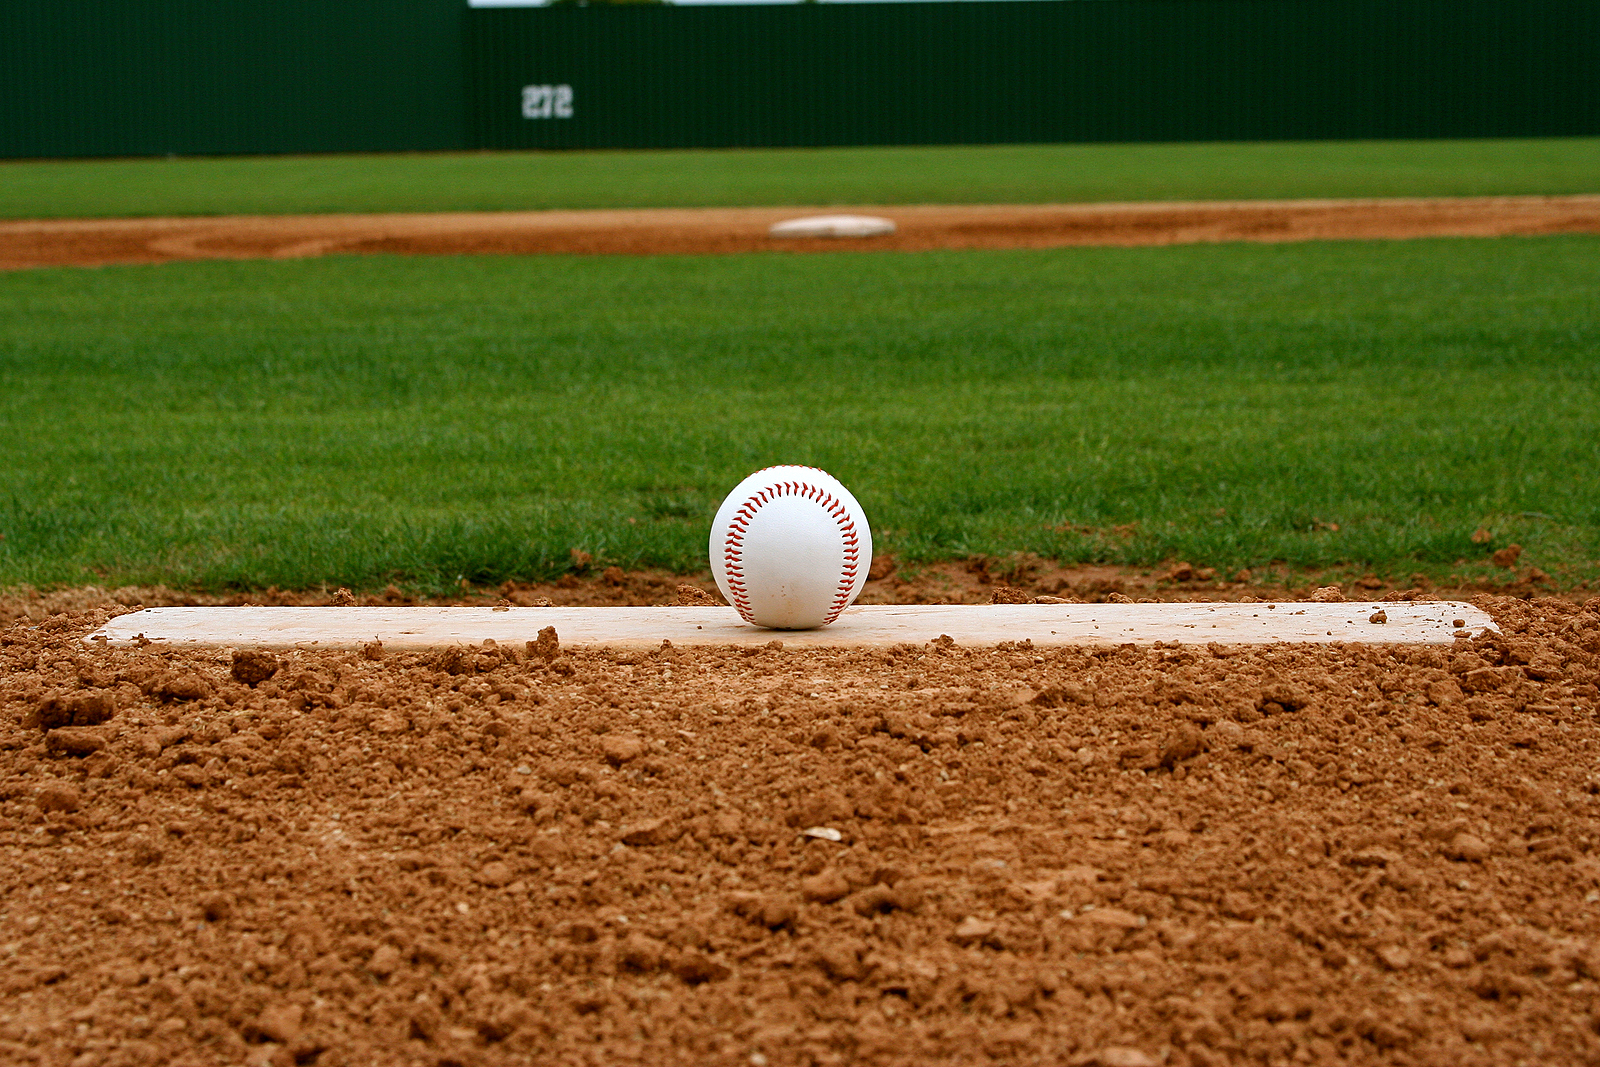 Complete Game Physical Therapy focuses on baseball players and injuries in the Tewksbury, MA area.